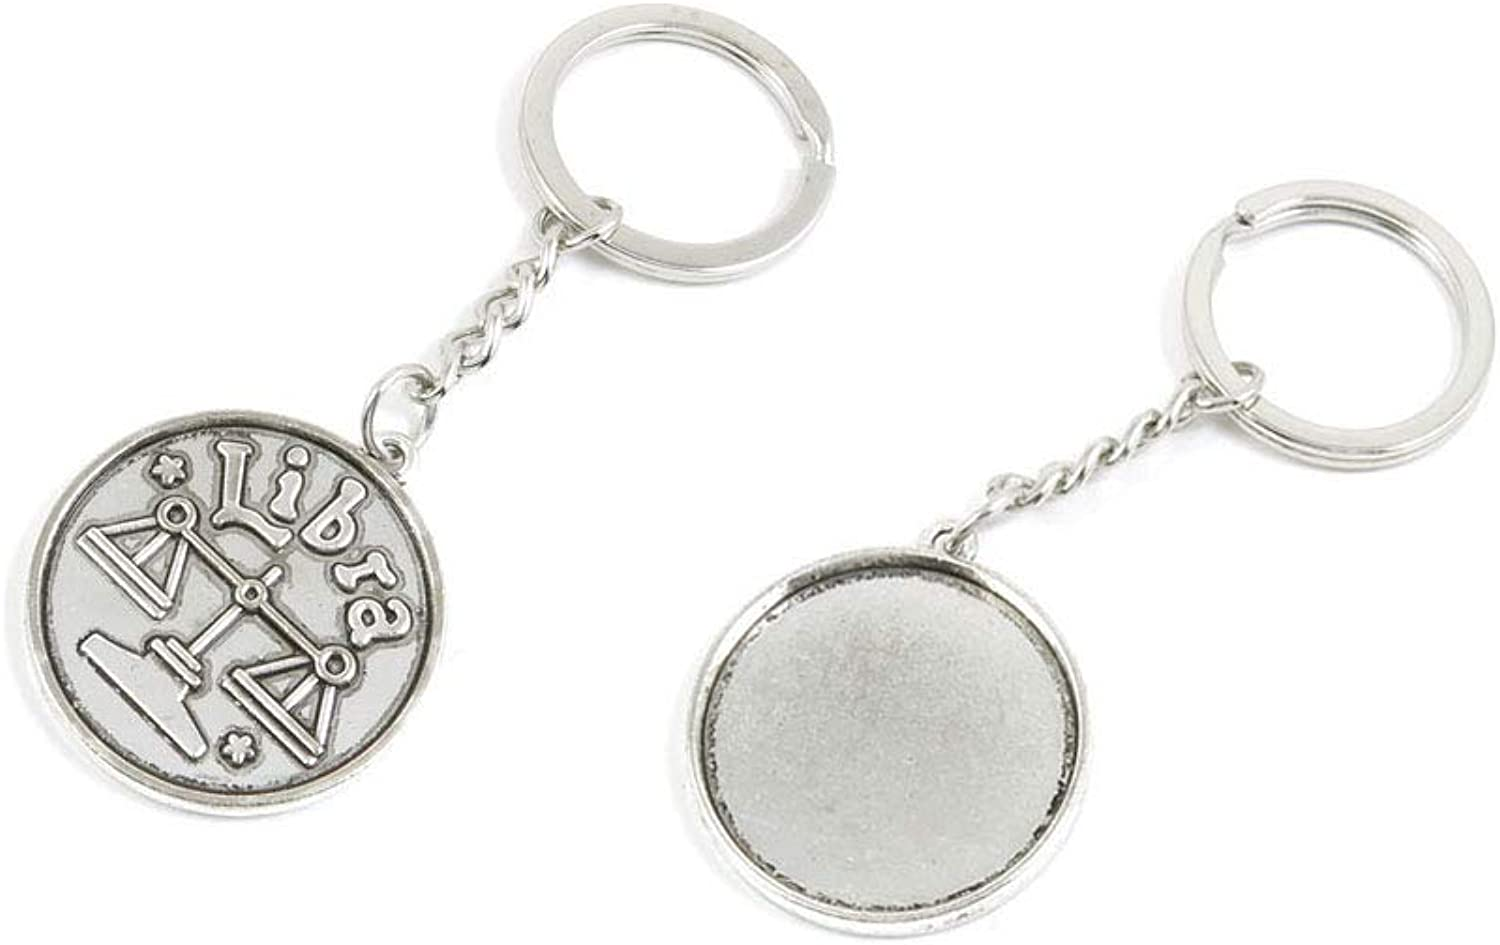 100 PCS Antique Silver Keyrings Keychains Key Ring Chains Tags Clasps I6WM1 Aquarius Round Cabochon Setting Blank